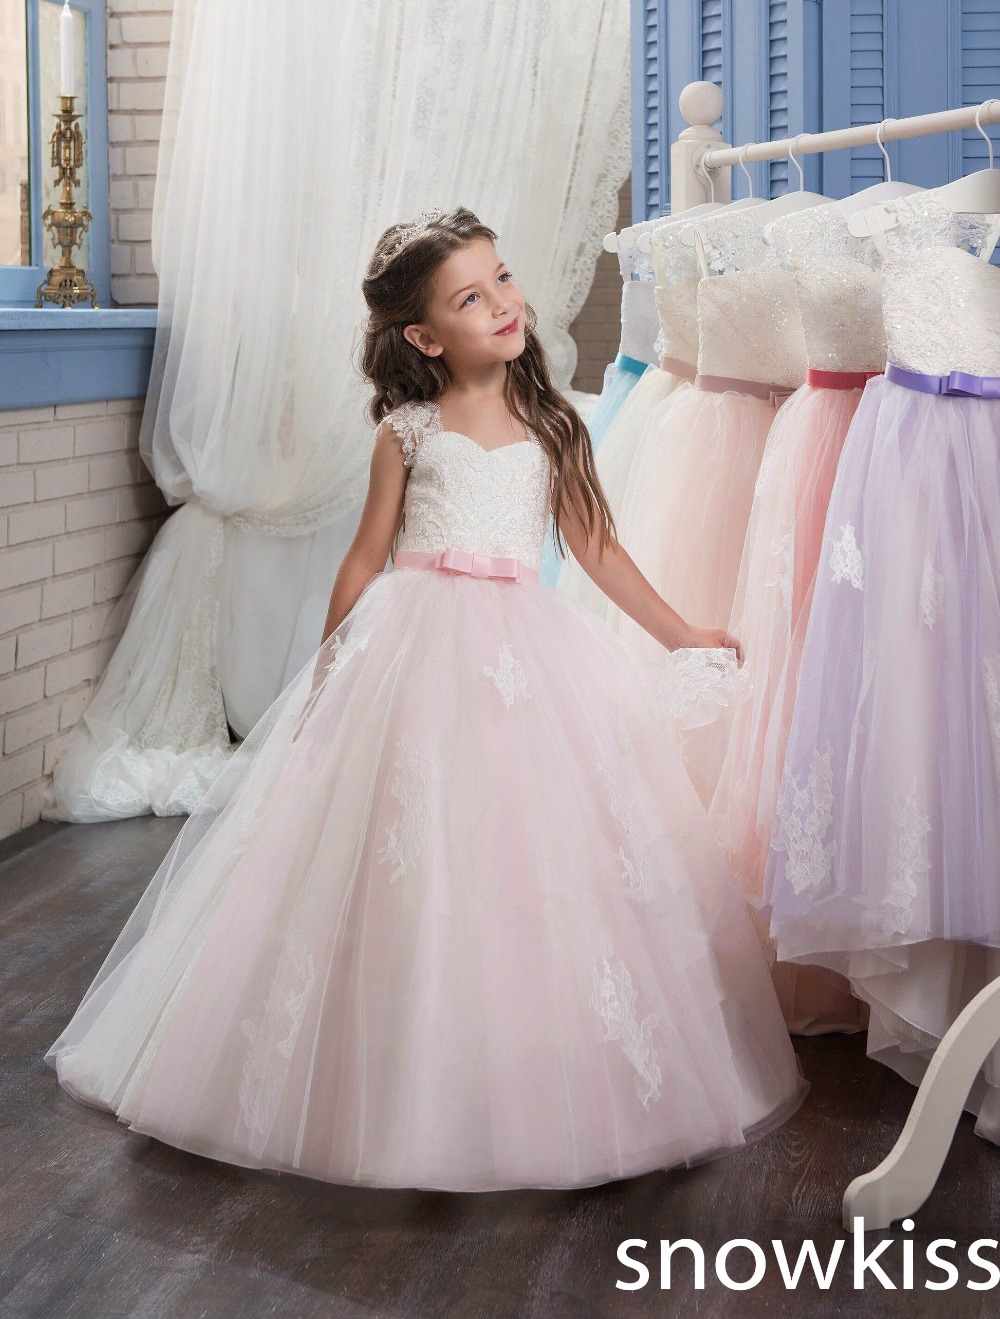 Blush pink first communion dress tulle ball gown sweetheart flower girl dresses with lace appliques kids pageant prom dresses gorgeous lace beading sequins sleeveless flower girl dress champagne lace up keyhole back kids tulle pageant ball gowns for prom